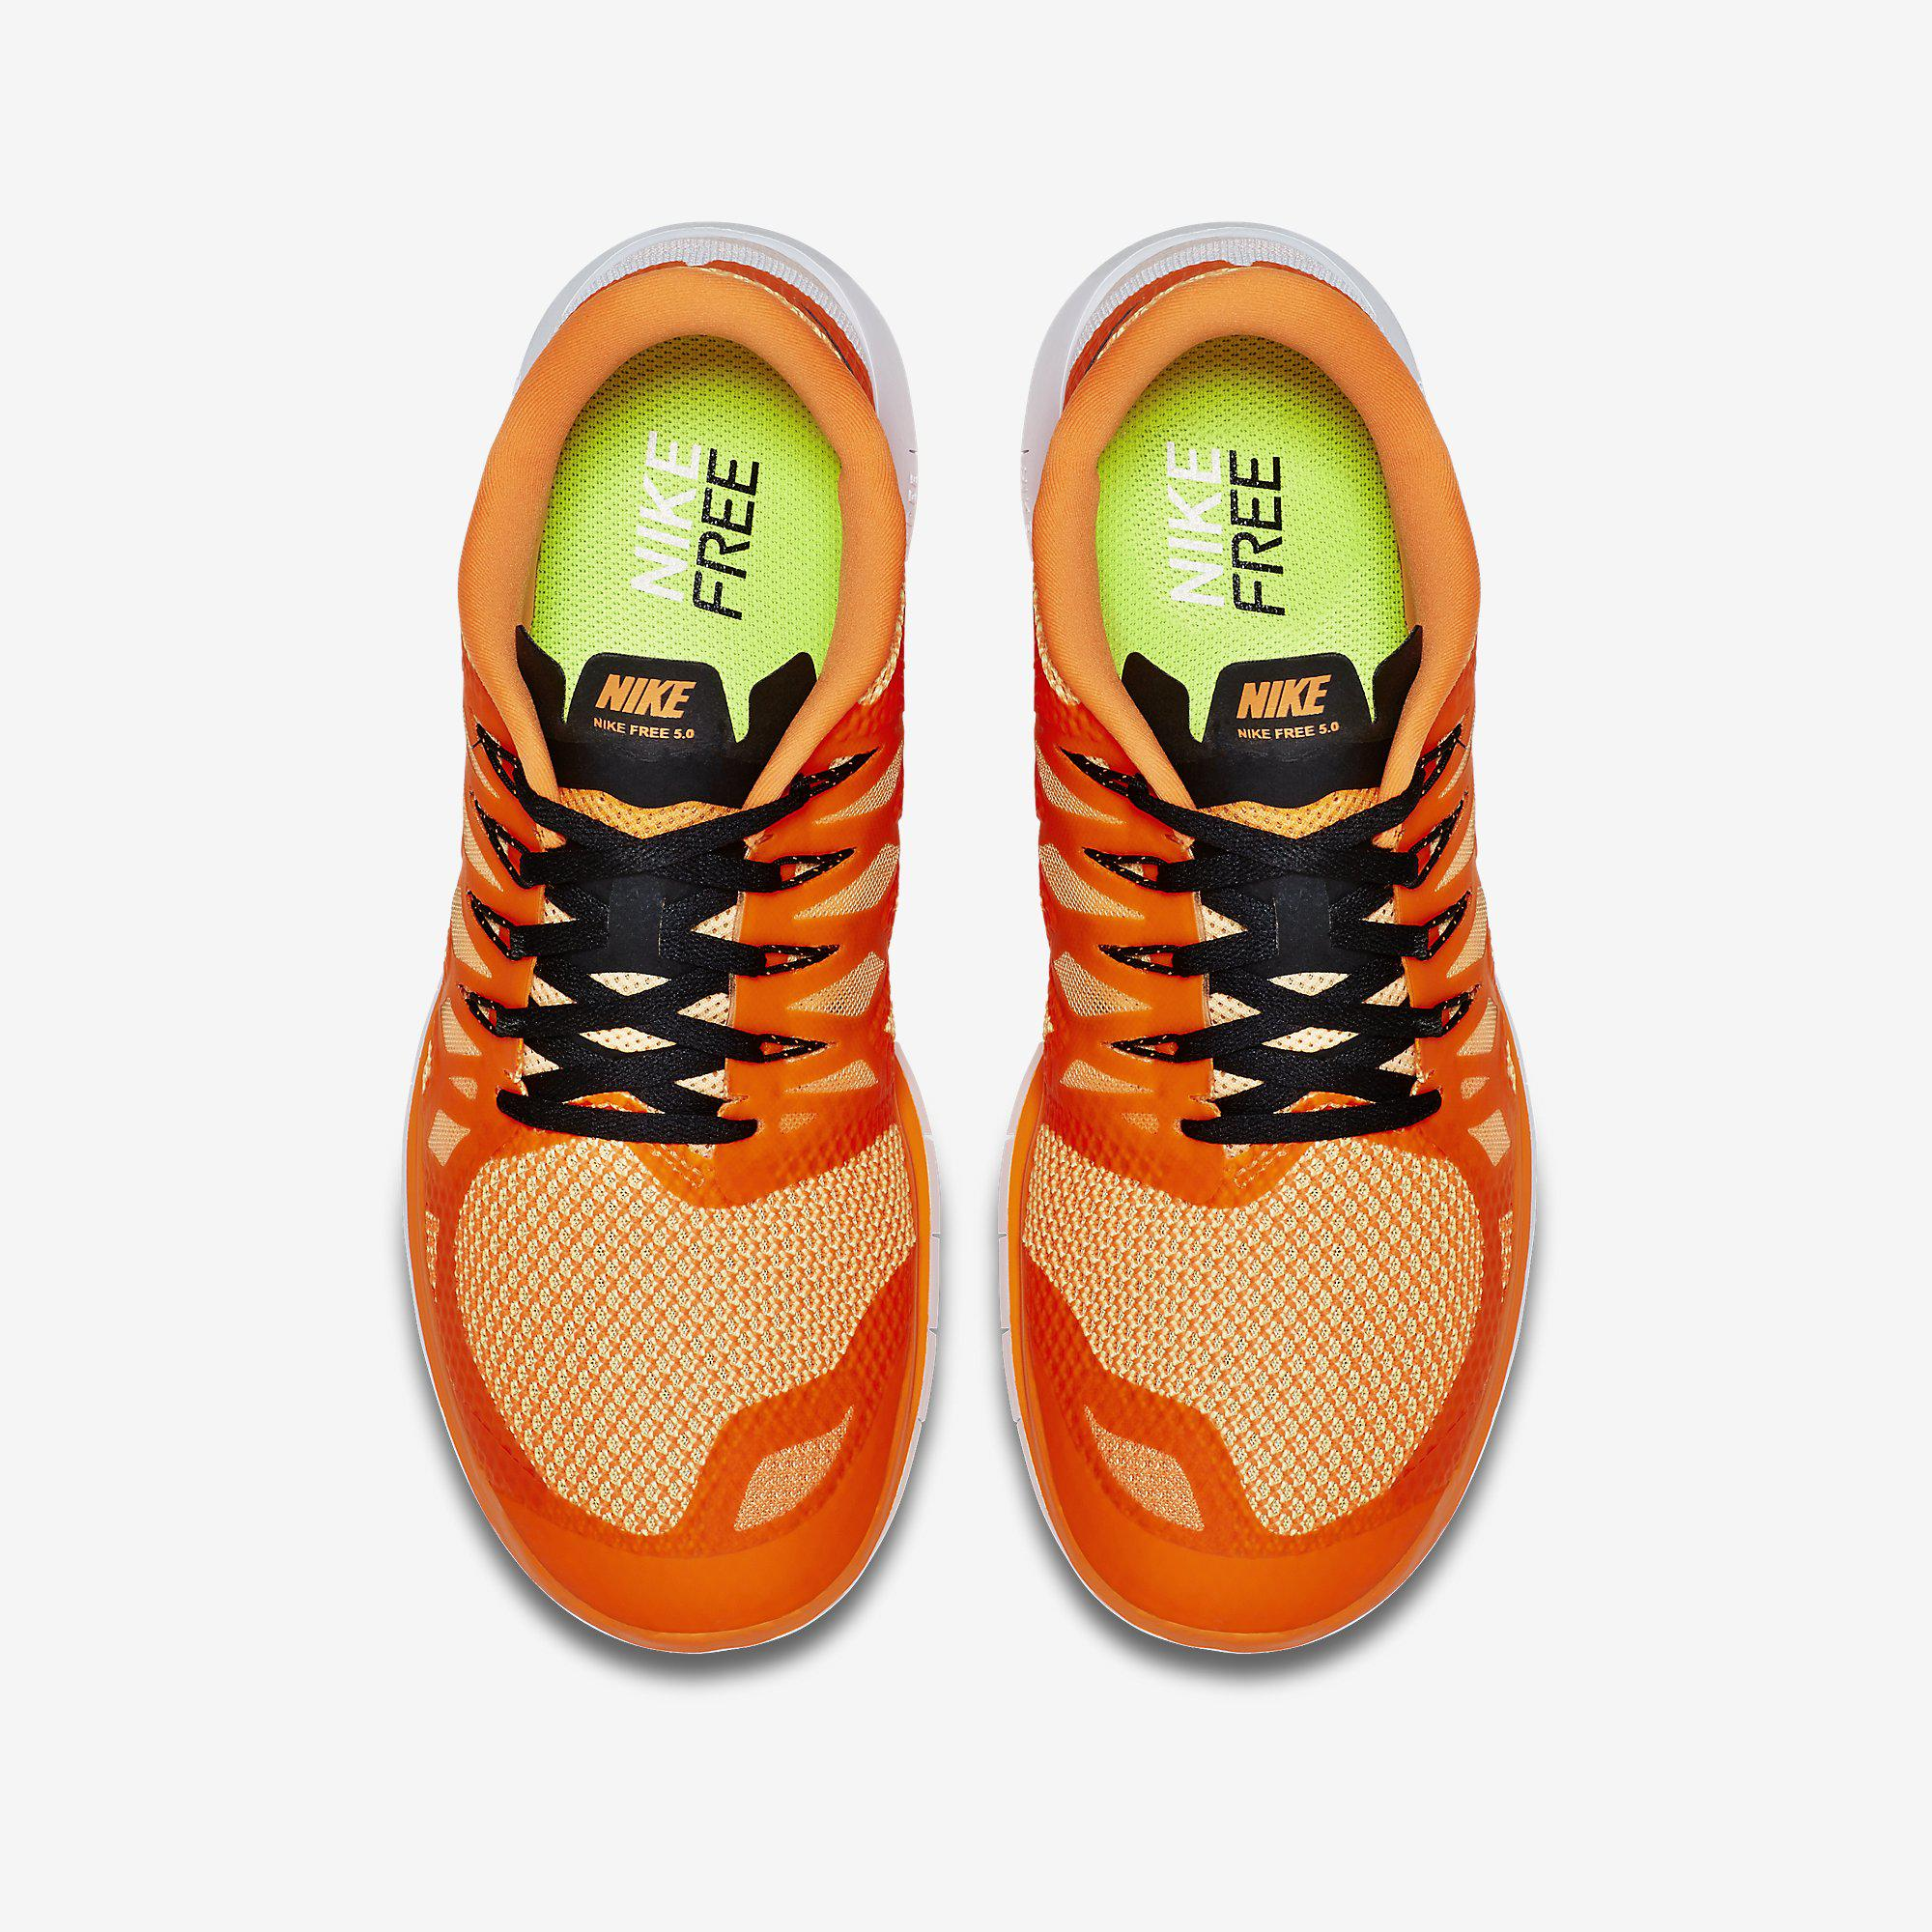 buy popular 177b6 70dd9 Nike Mens Free 5.0+ Running Shoes - Orange/Black - Tennisnuts.com